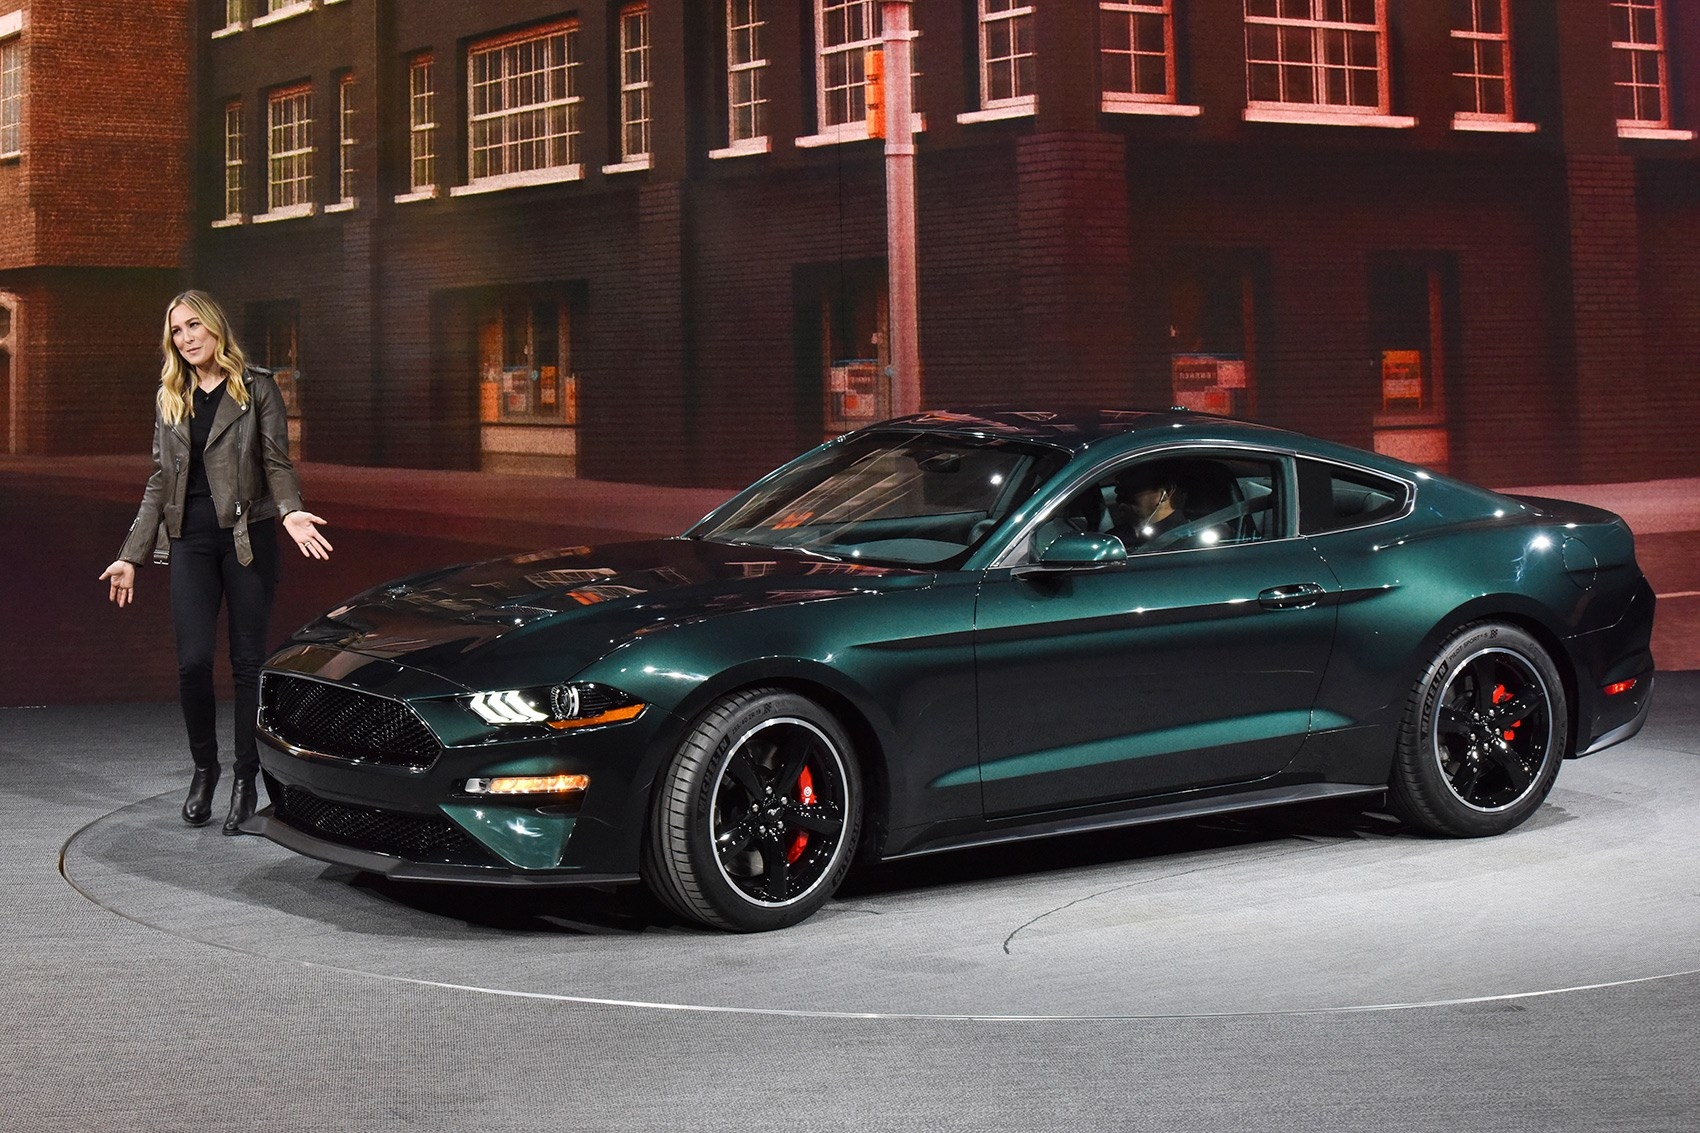 Grand daughter of bullitt actor steve unveils the new 2019 ford mustang bullitt in detroit